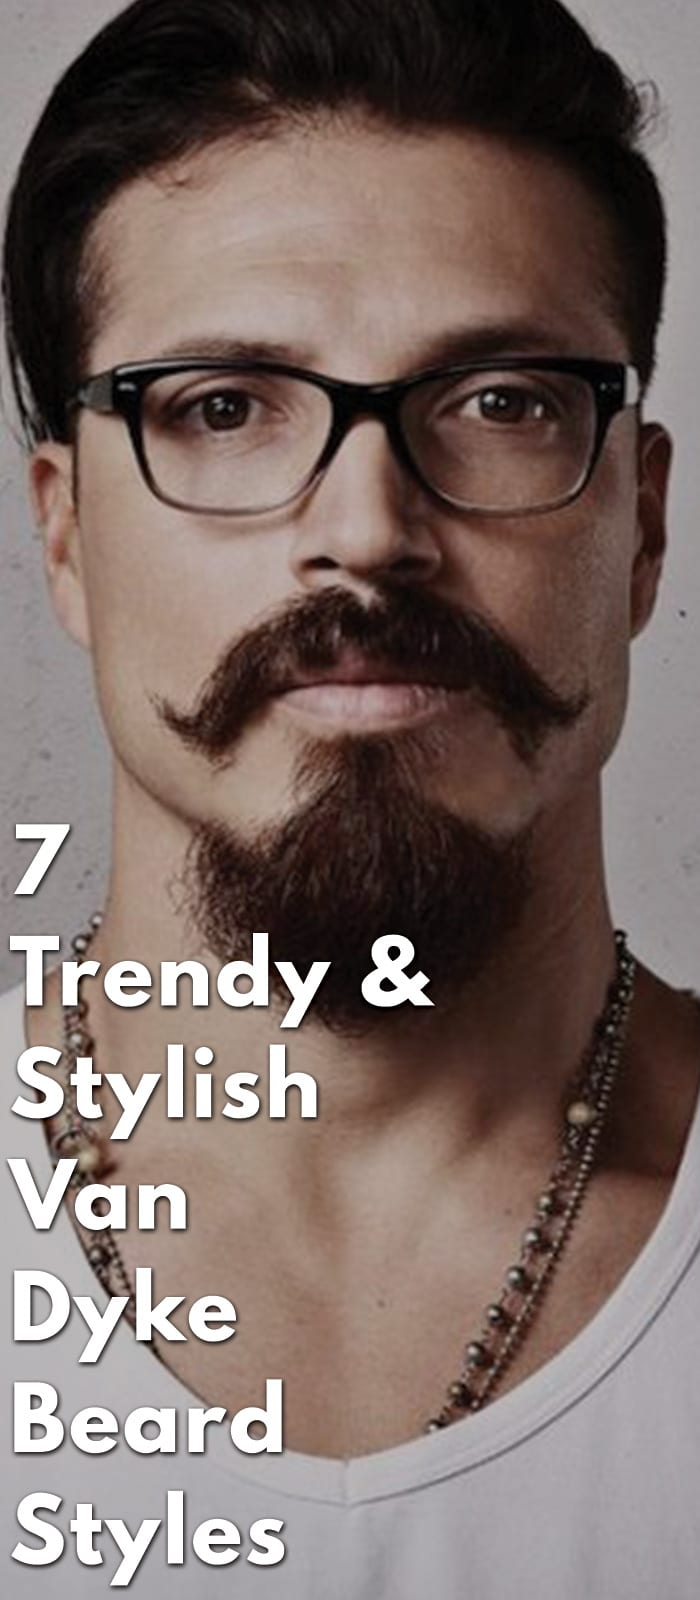 7-Trendy-&-Stylish-Van-Dyke-Beard-Styles-.